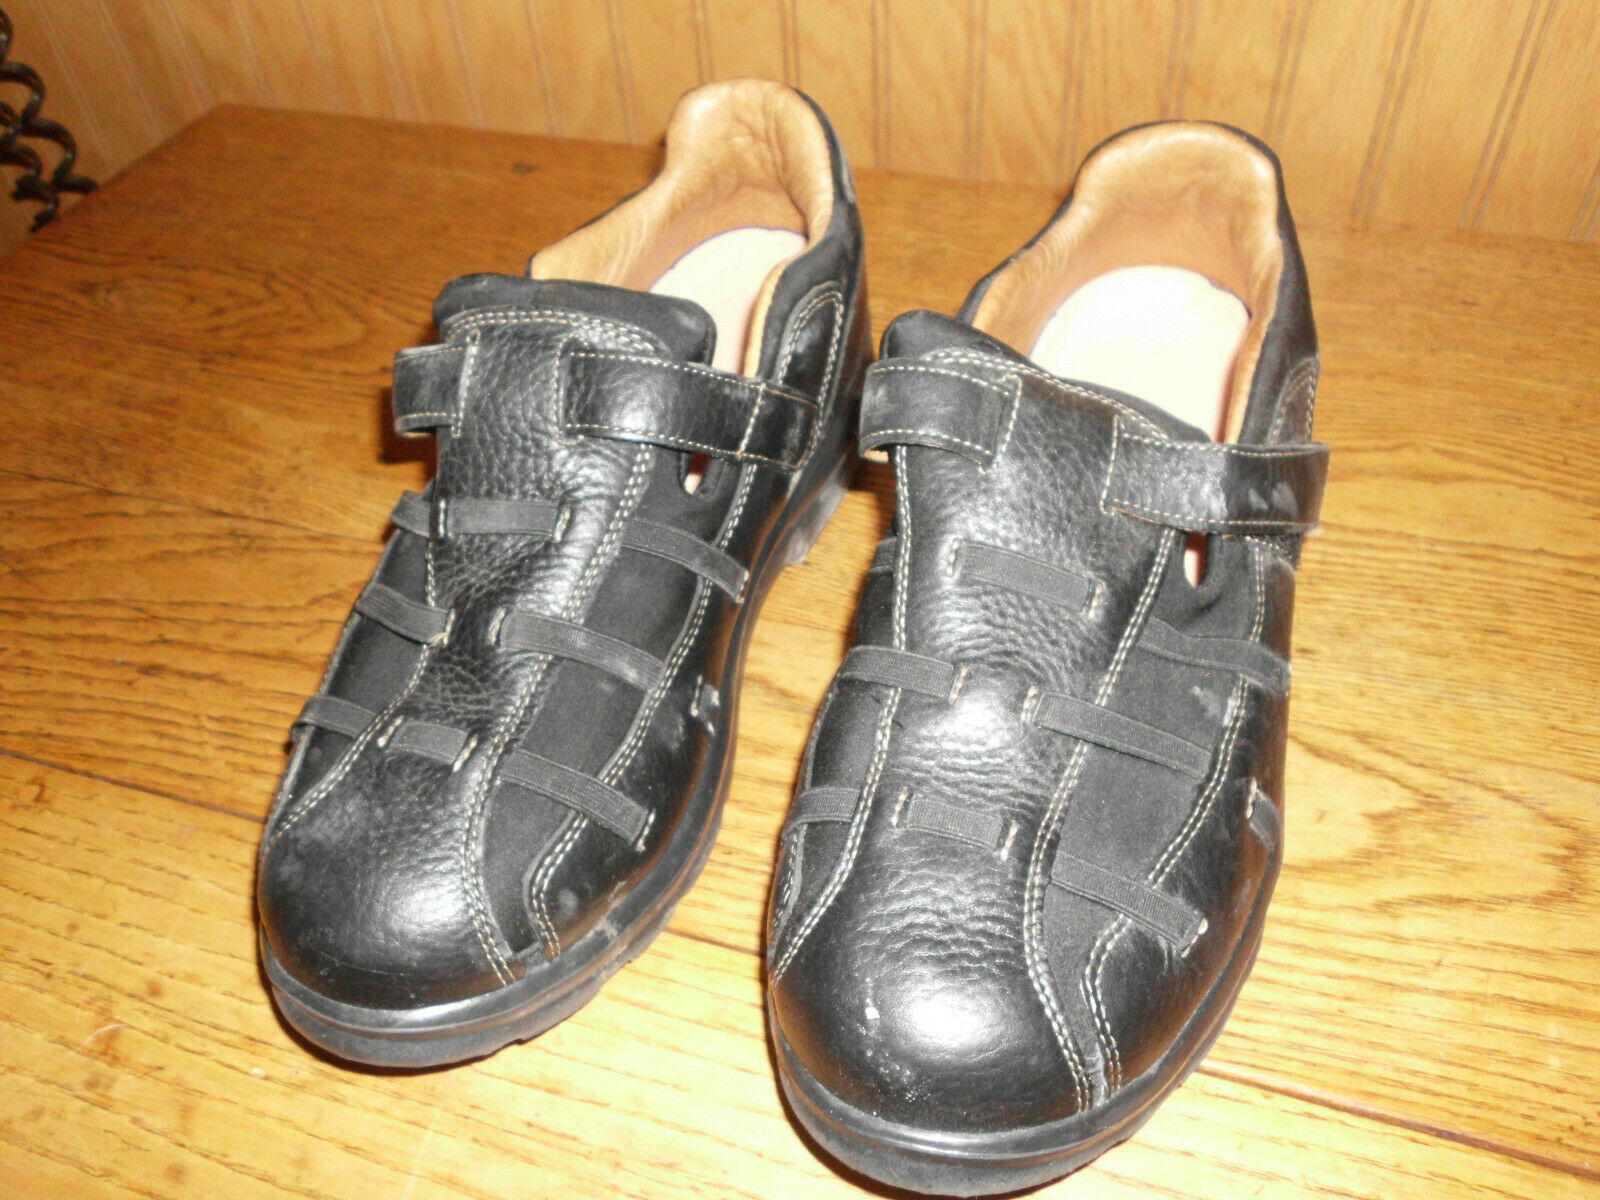 Dr. Comfort Betty Black Leather Therapeutic Diabetic Shoes US 9 W